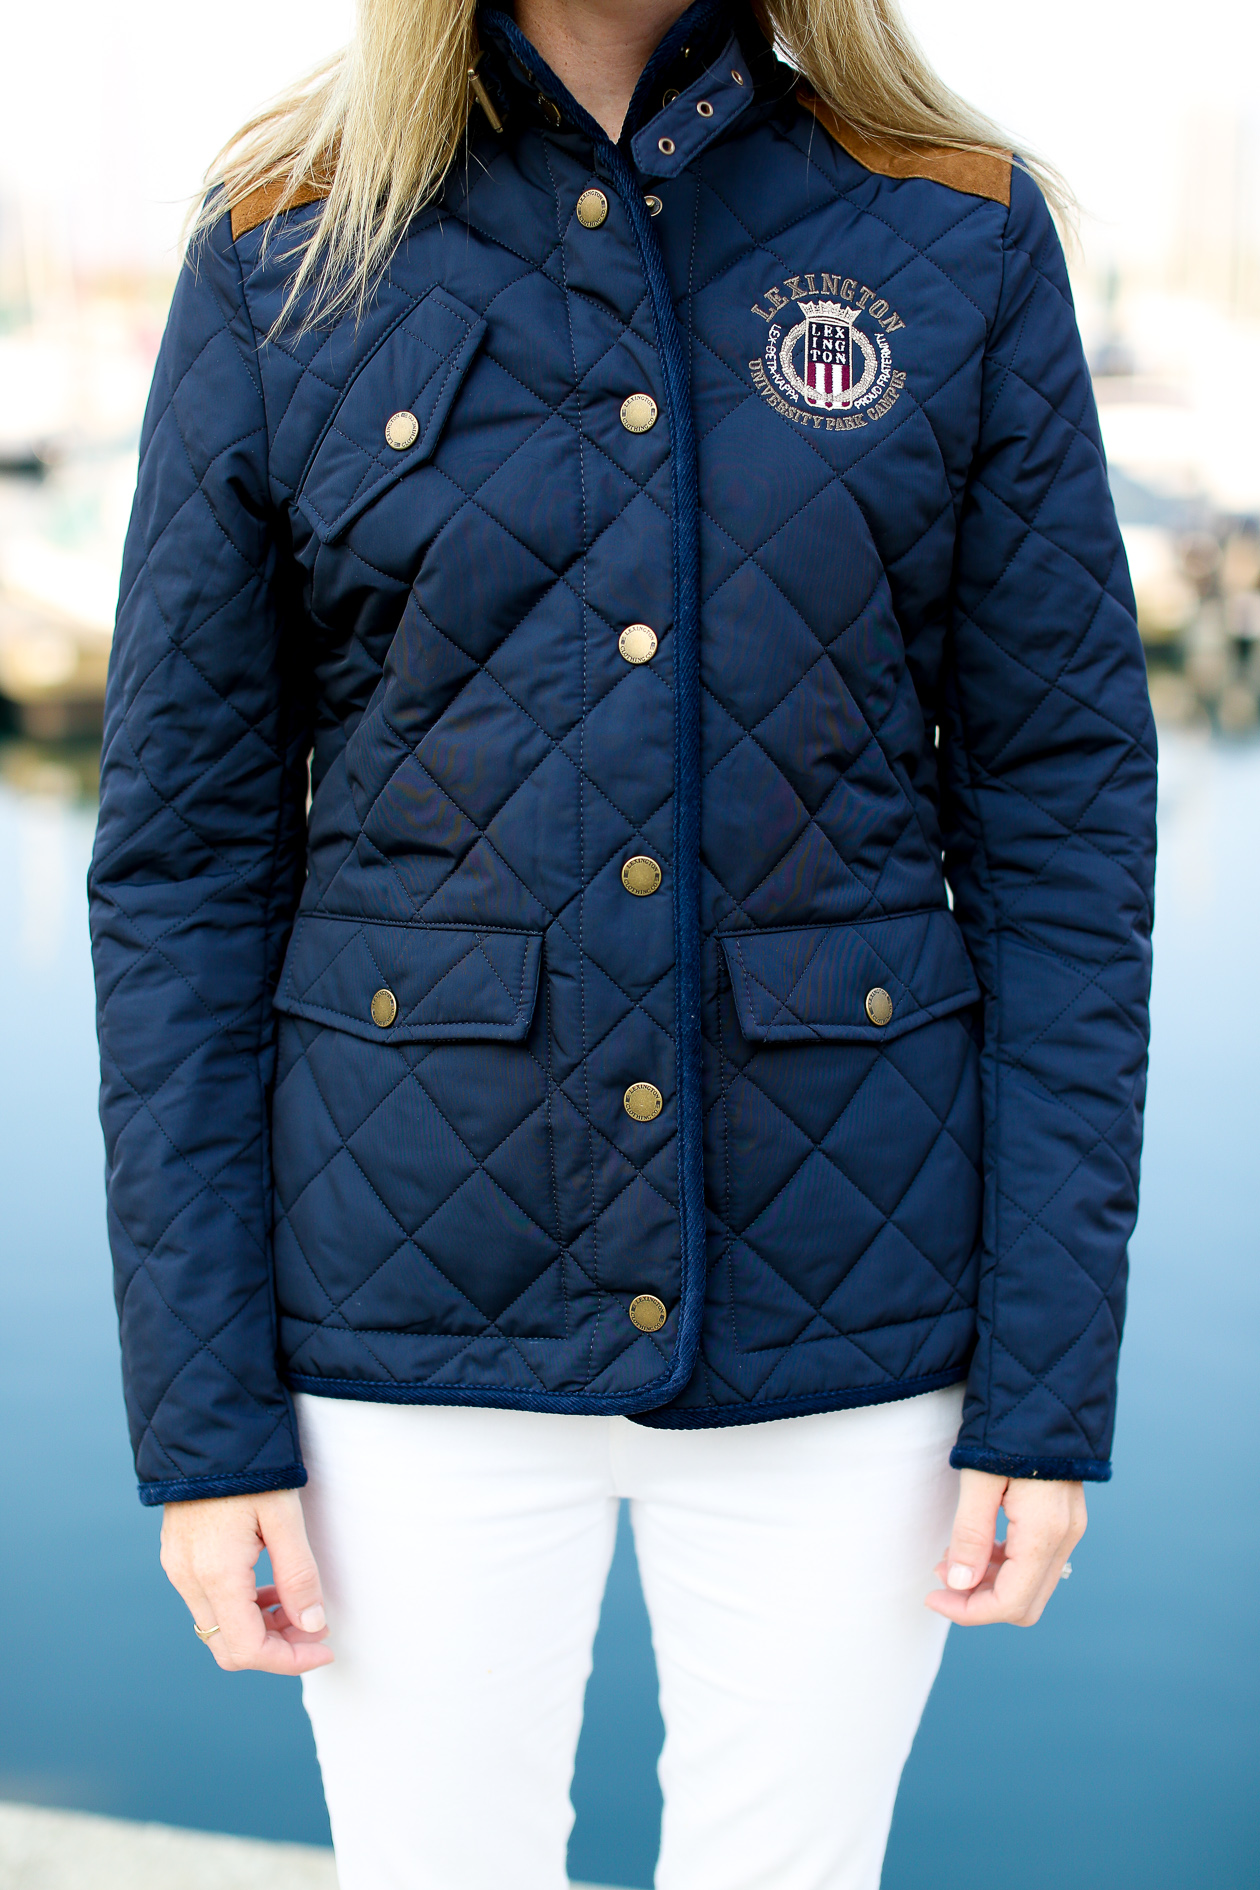 Lexington Navy Quilted Jacket-131